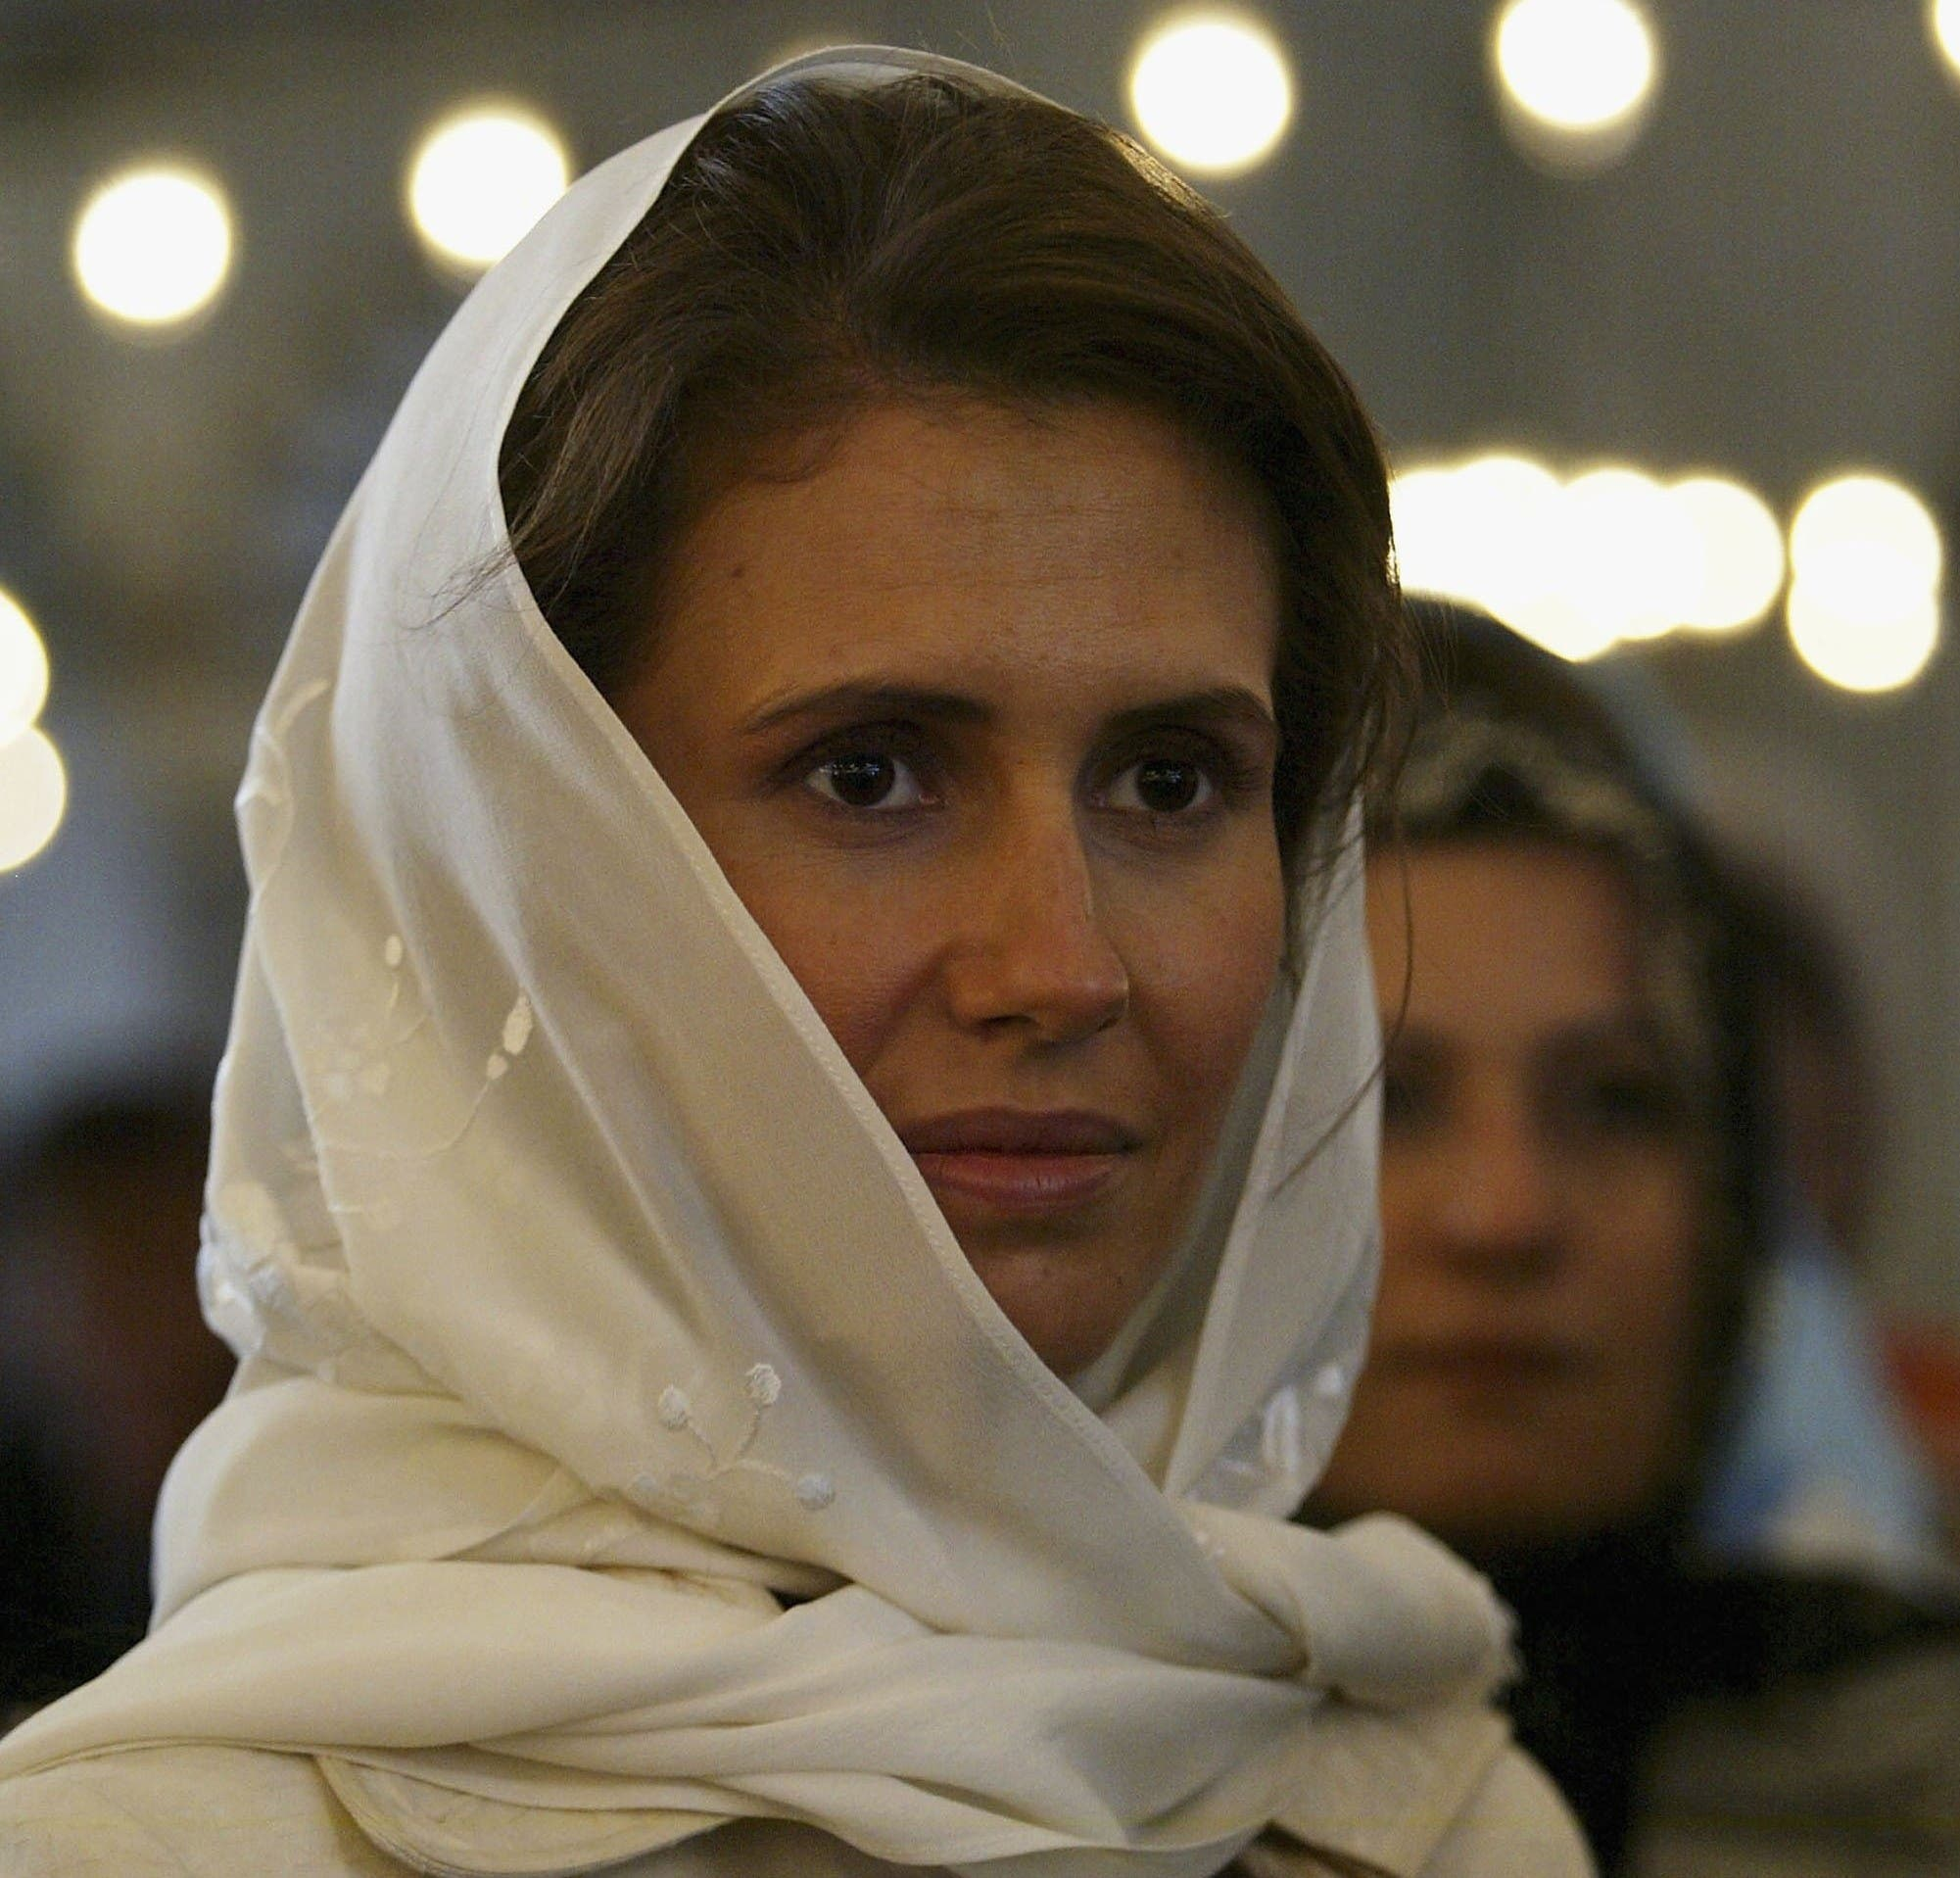 No More Shopping Trips for Asma after Assad Leaks, Say EU ...